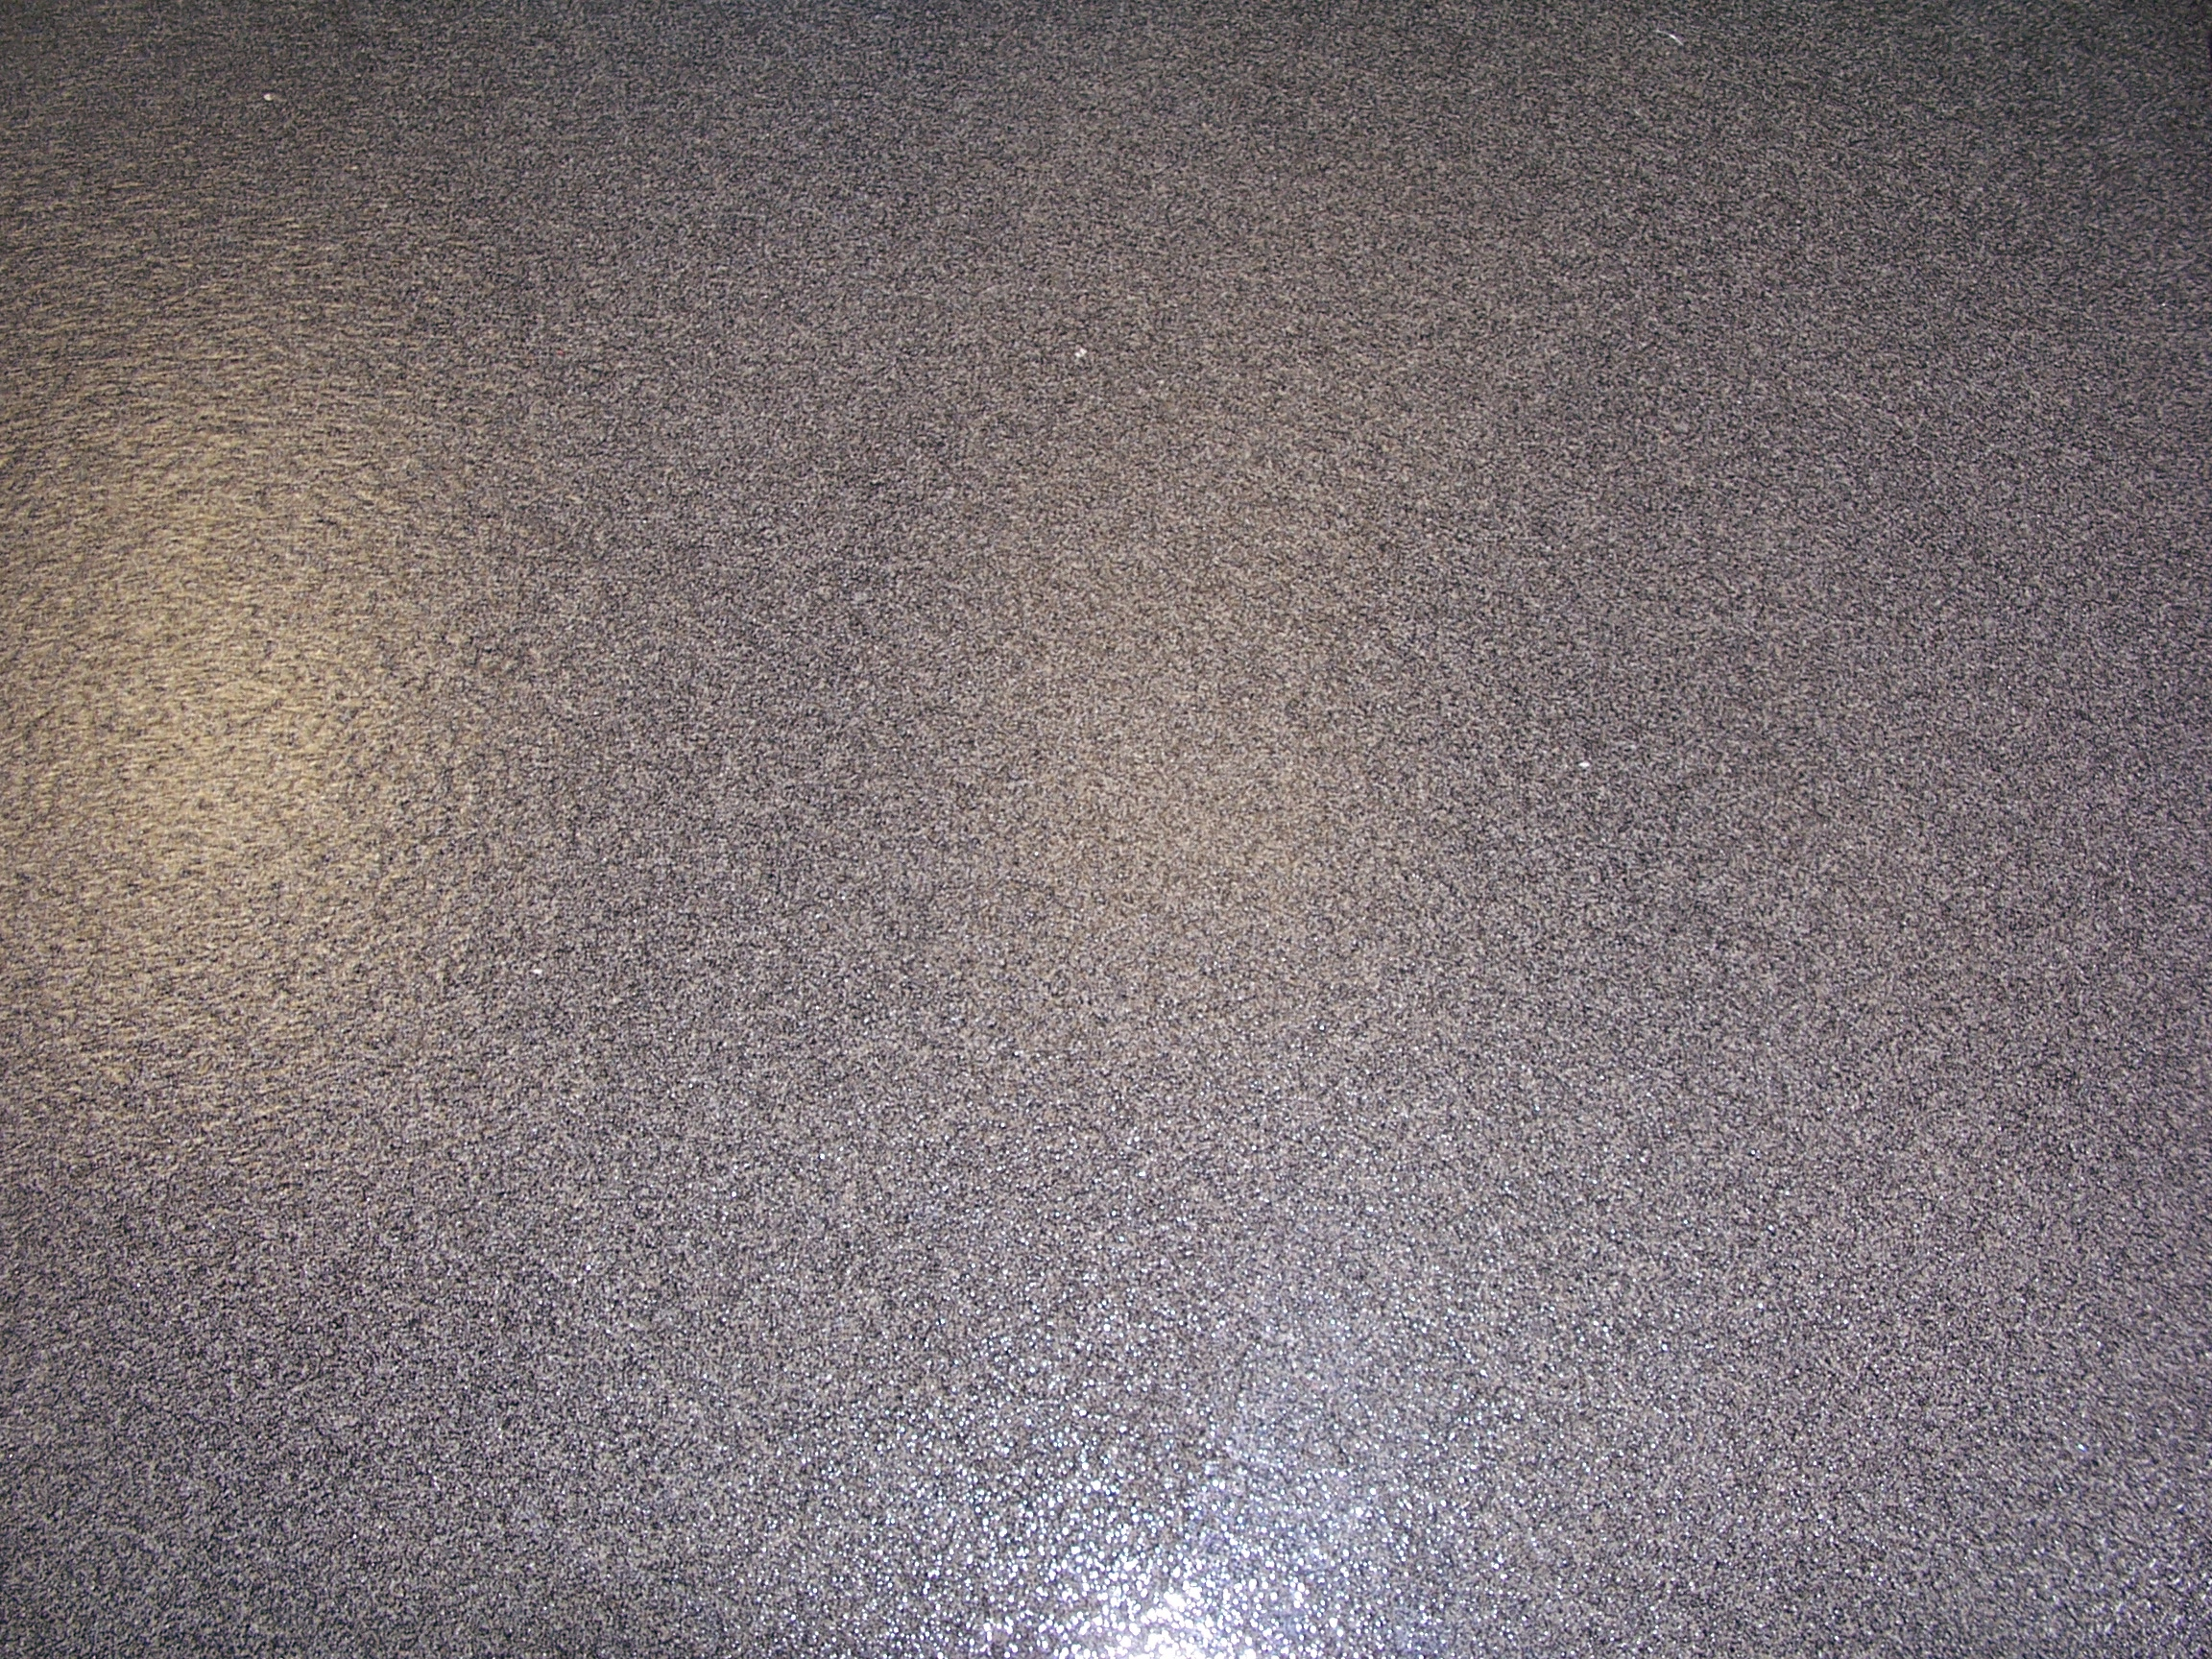 Epoxy Sand Quartz - Black